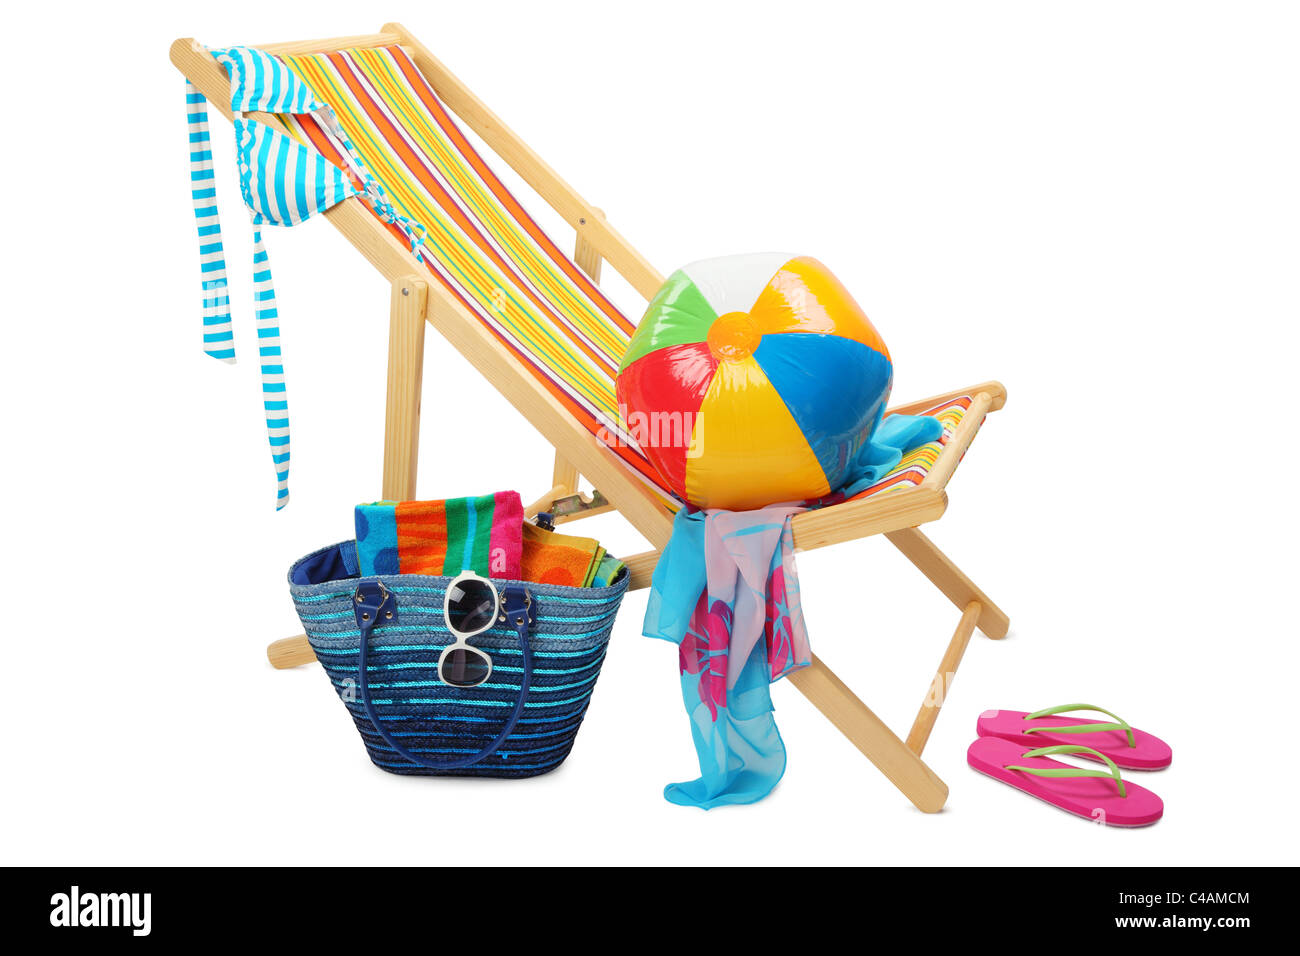 Deckchair and accessories isolated on white background. - Stock Image